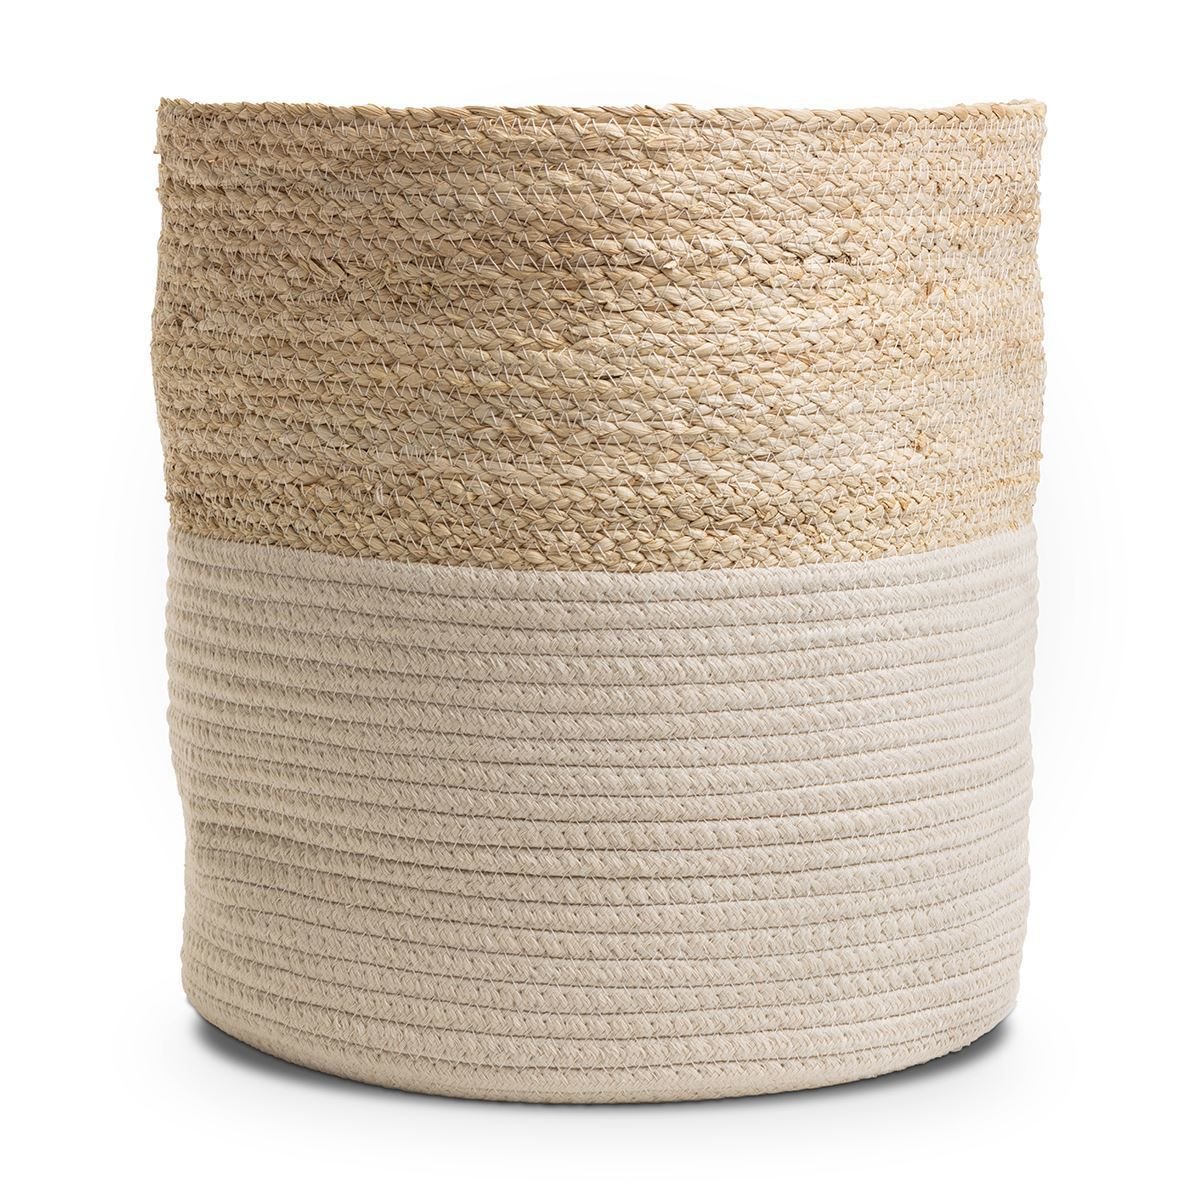 Large Rope Natural Storage Basket